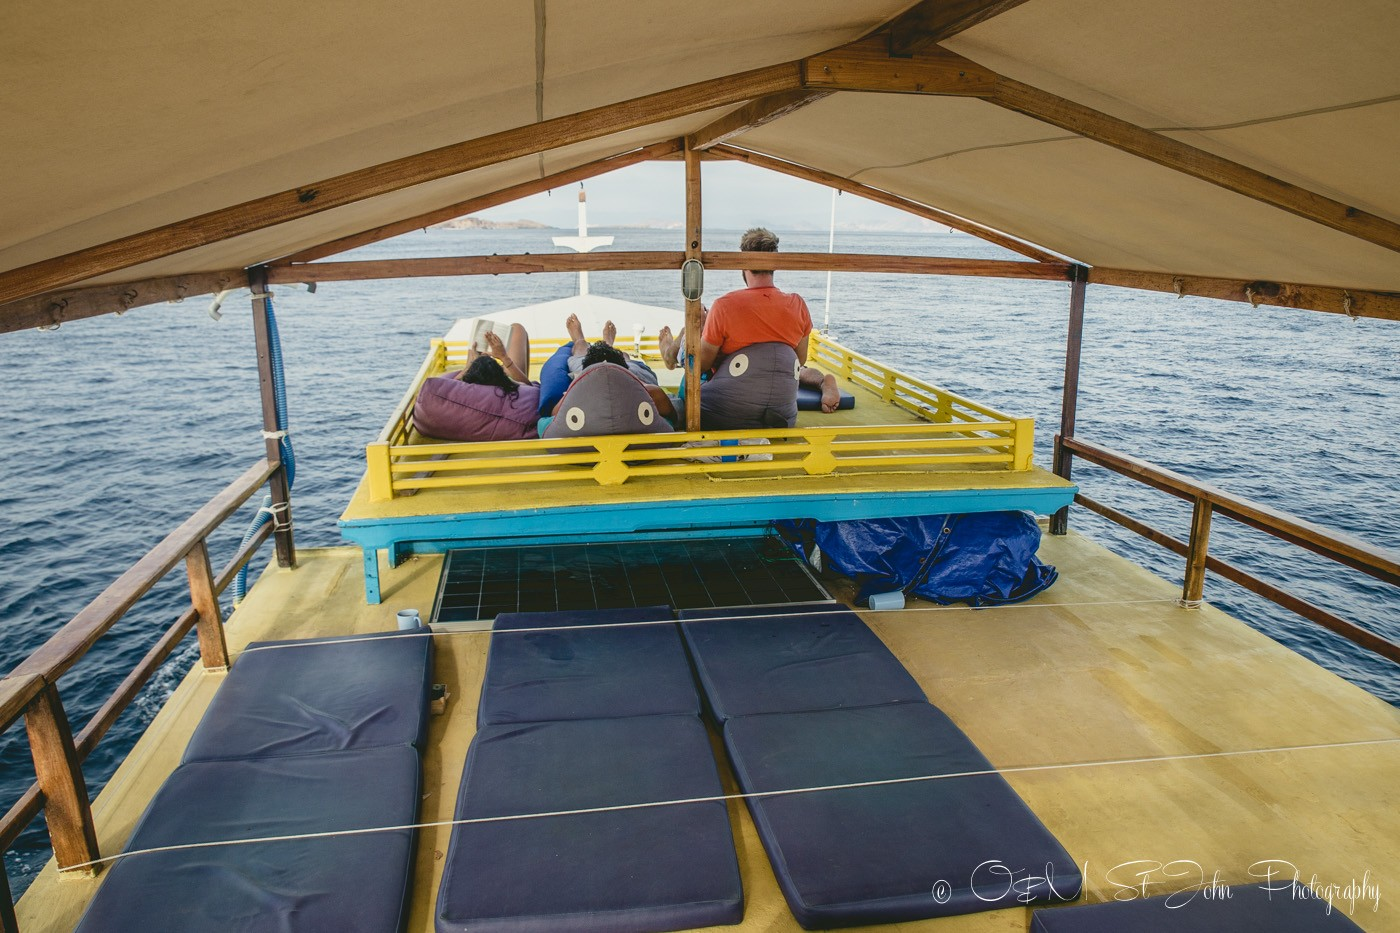 Comfy chil out area on the Uber Scuba Day Boat